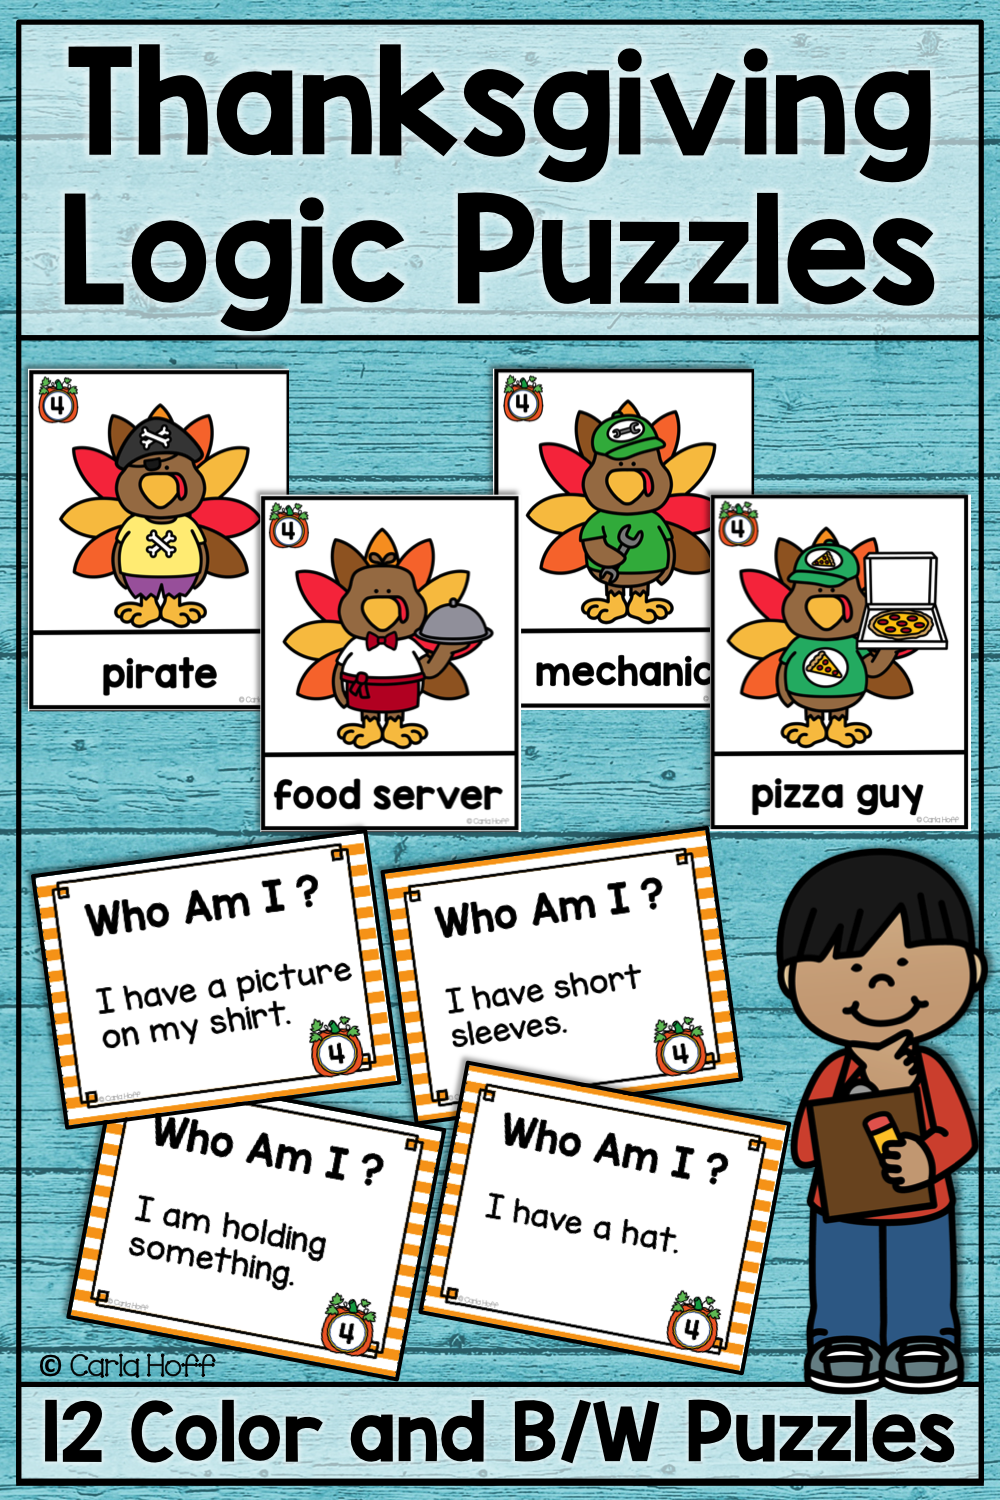 Who Am I? Thanksgiving Logic Puzzles Resources from My